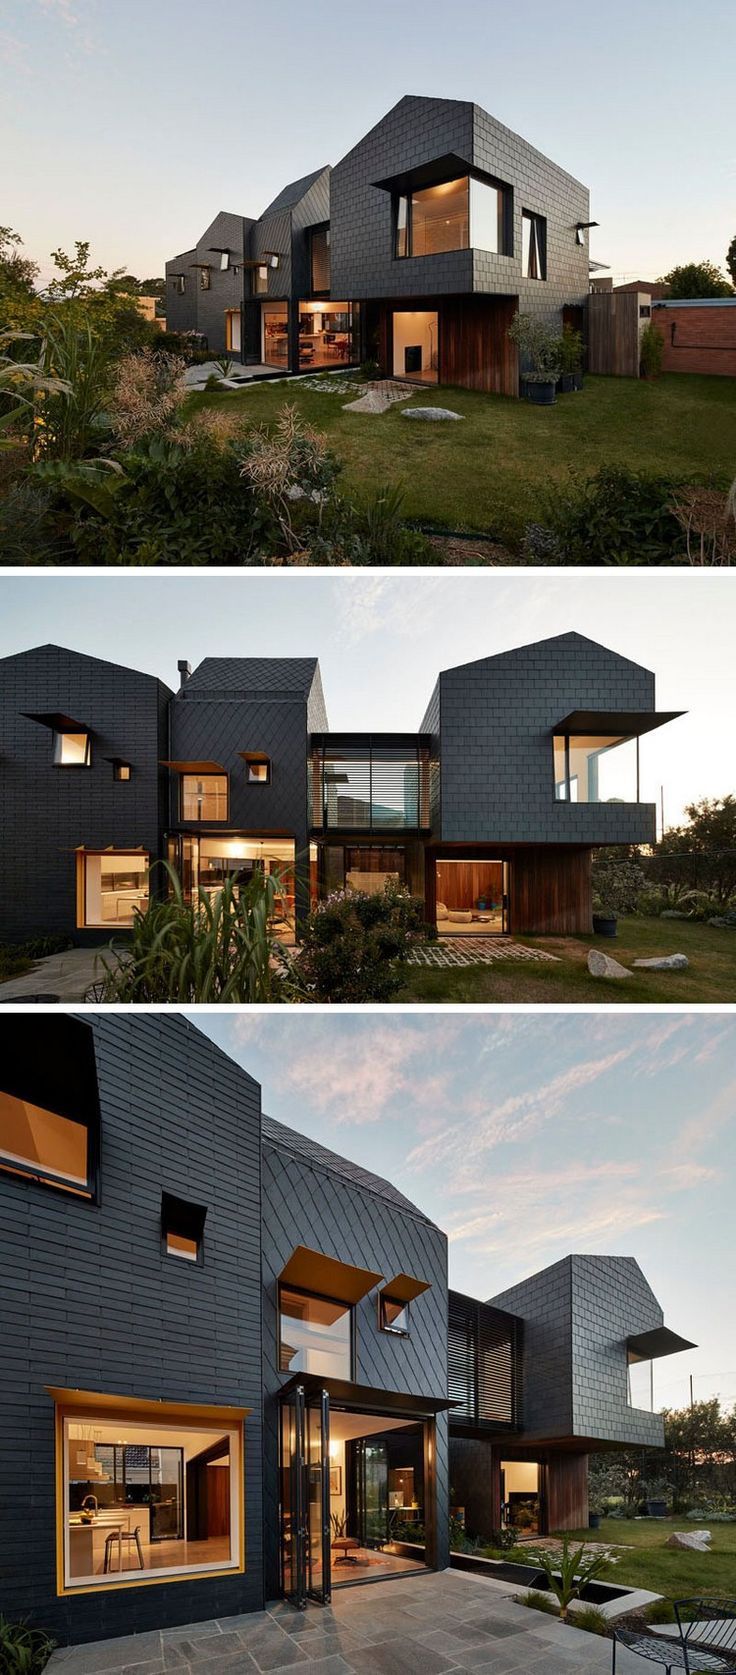 110 best Haus & Architektur images on Pinterest | Residential ...